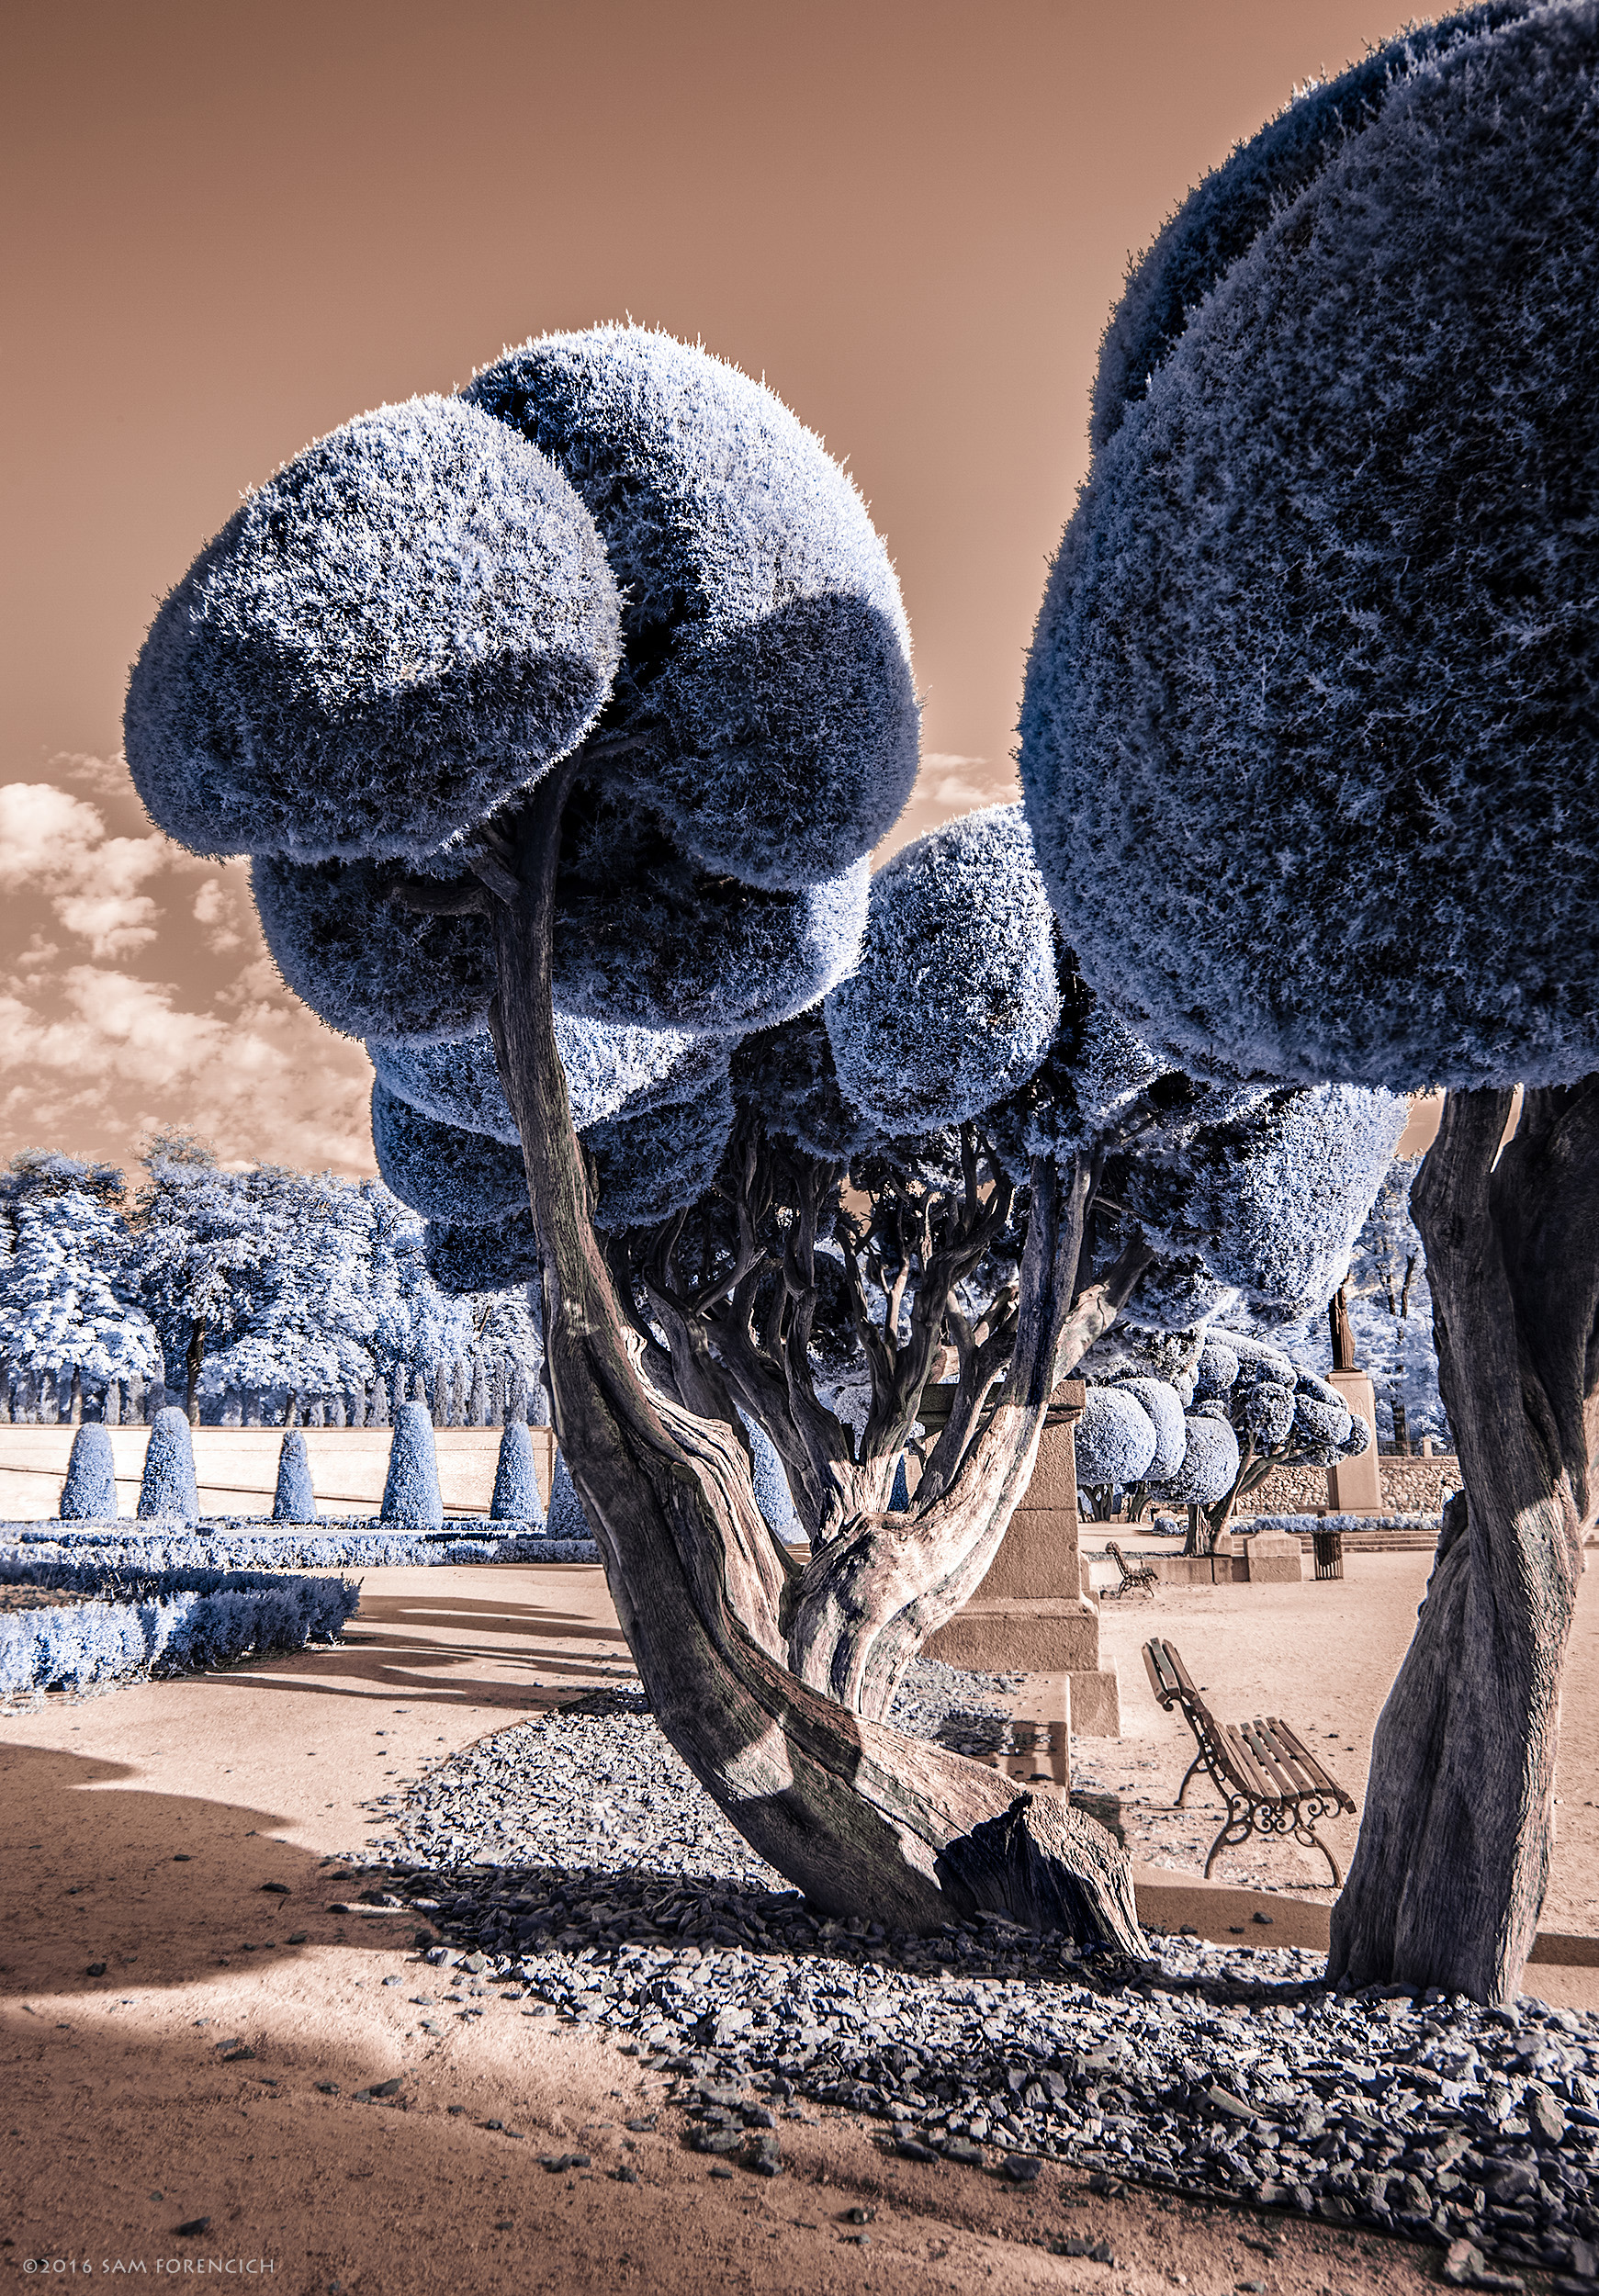 """Topiary trees decorate the grounds of Buen Retiro Park, Madrid, Spain. Parque del Buen Retiro, literally """"Park of the Pleasant Retreat"""", or simply El Retiro, is one of the largest parks of the city of Madrid, Spain. IR converted Canon 5D Mark II.  © 2015 Sam Forencich"""